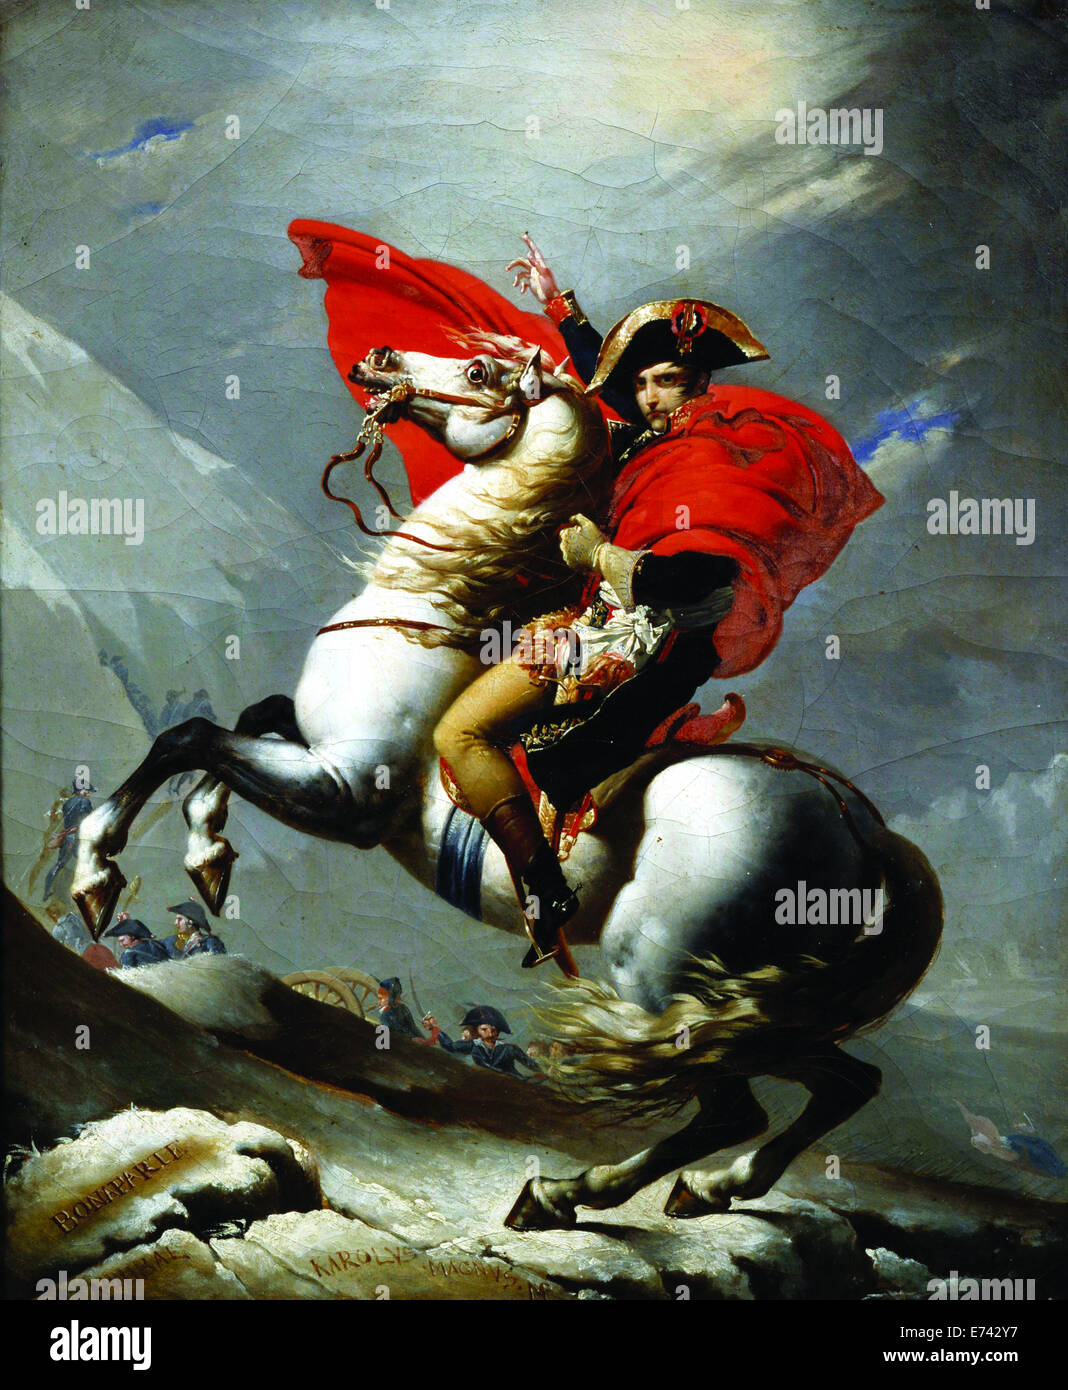 Napoleon Crossing the Alps, known as 'Napoleon at the Saint-Bernard Pass' - by Jacques-Louis David, 1801 - Stock Image